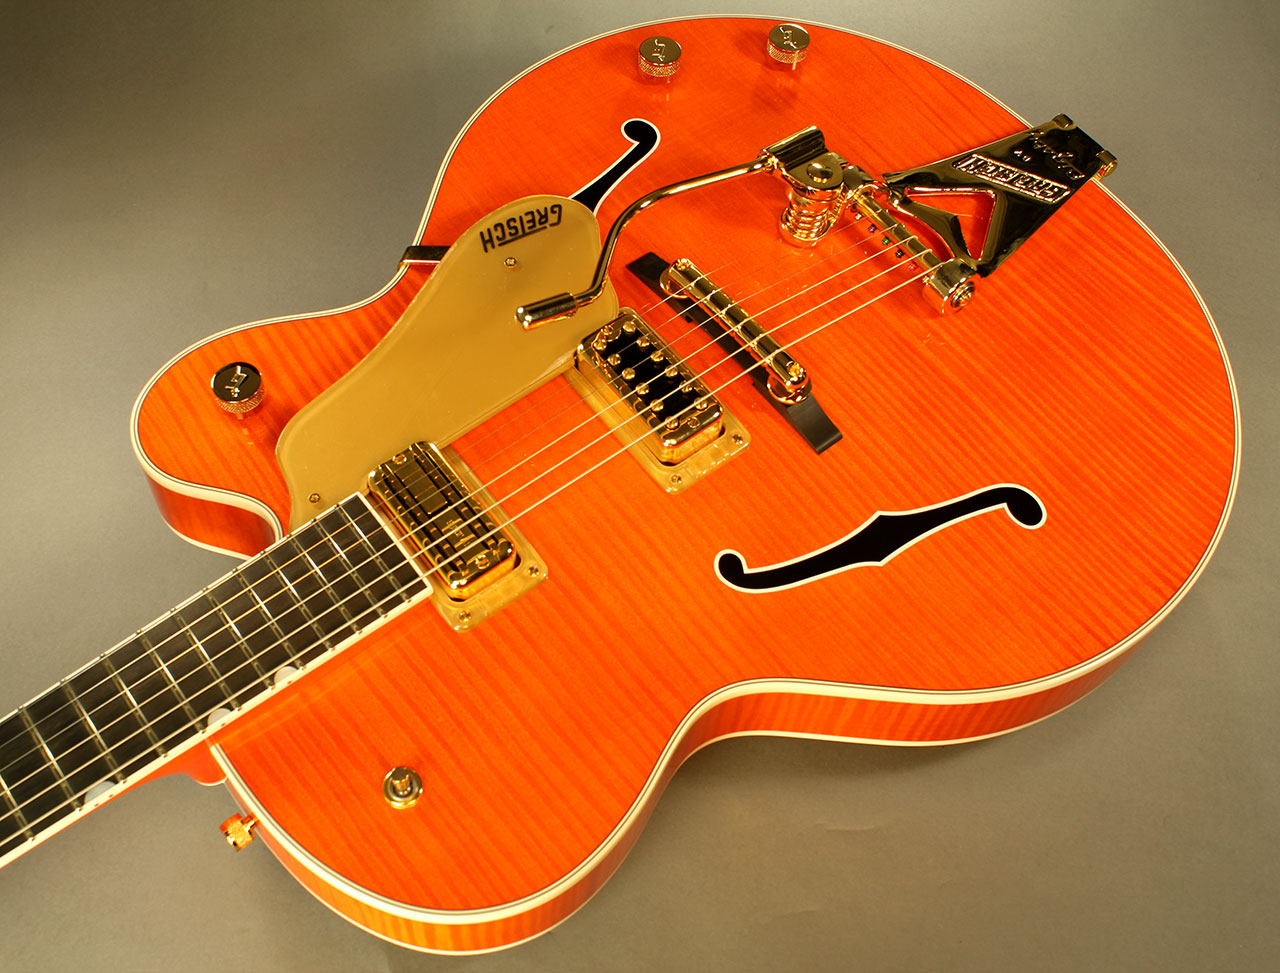 Gretsch G6122 1959 Chet Atkins Hall Of Fame Country